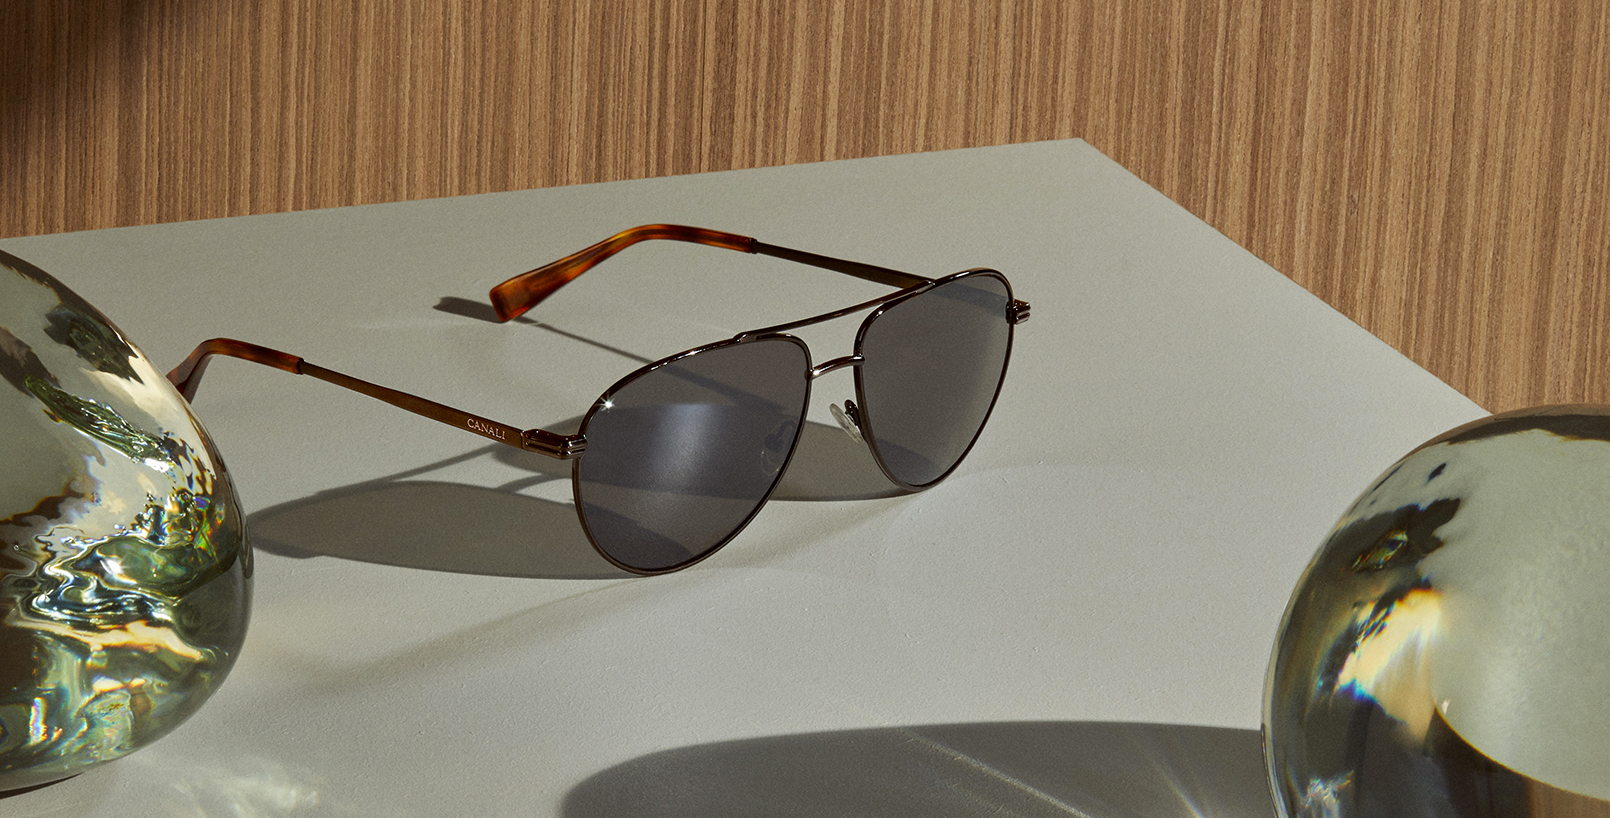 Canali Eyewear Collection:<br>elegance at first sight.